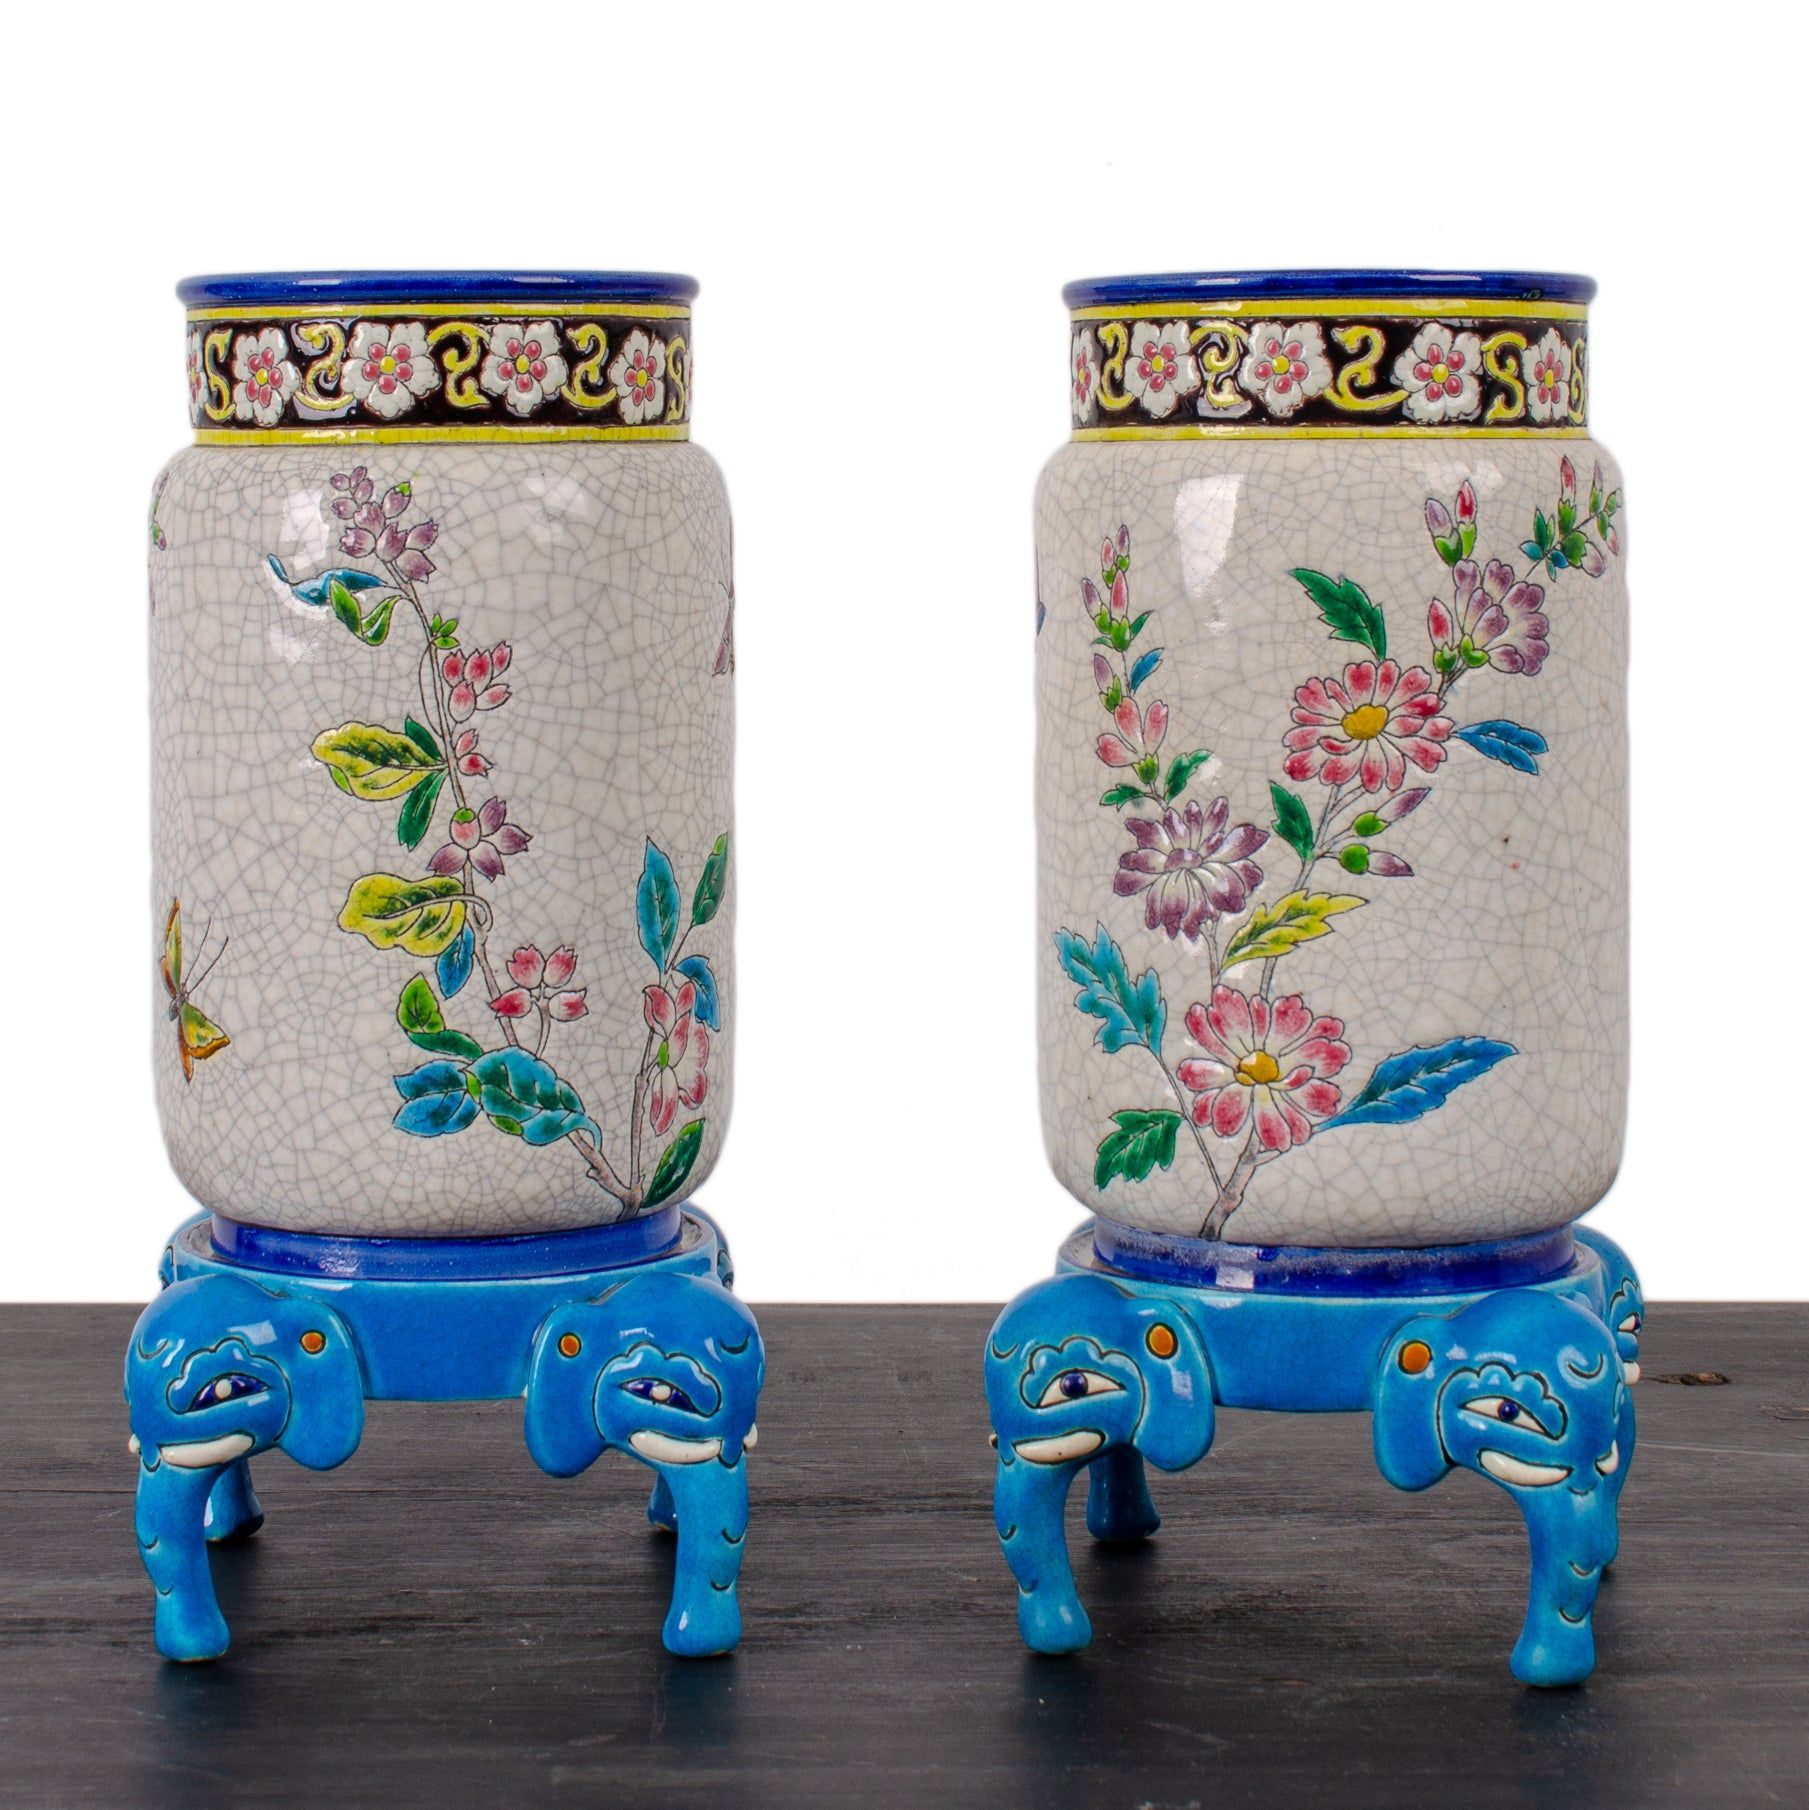 Longwy Pottery Vases and Stands, c.1880